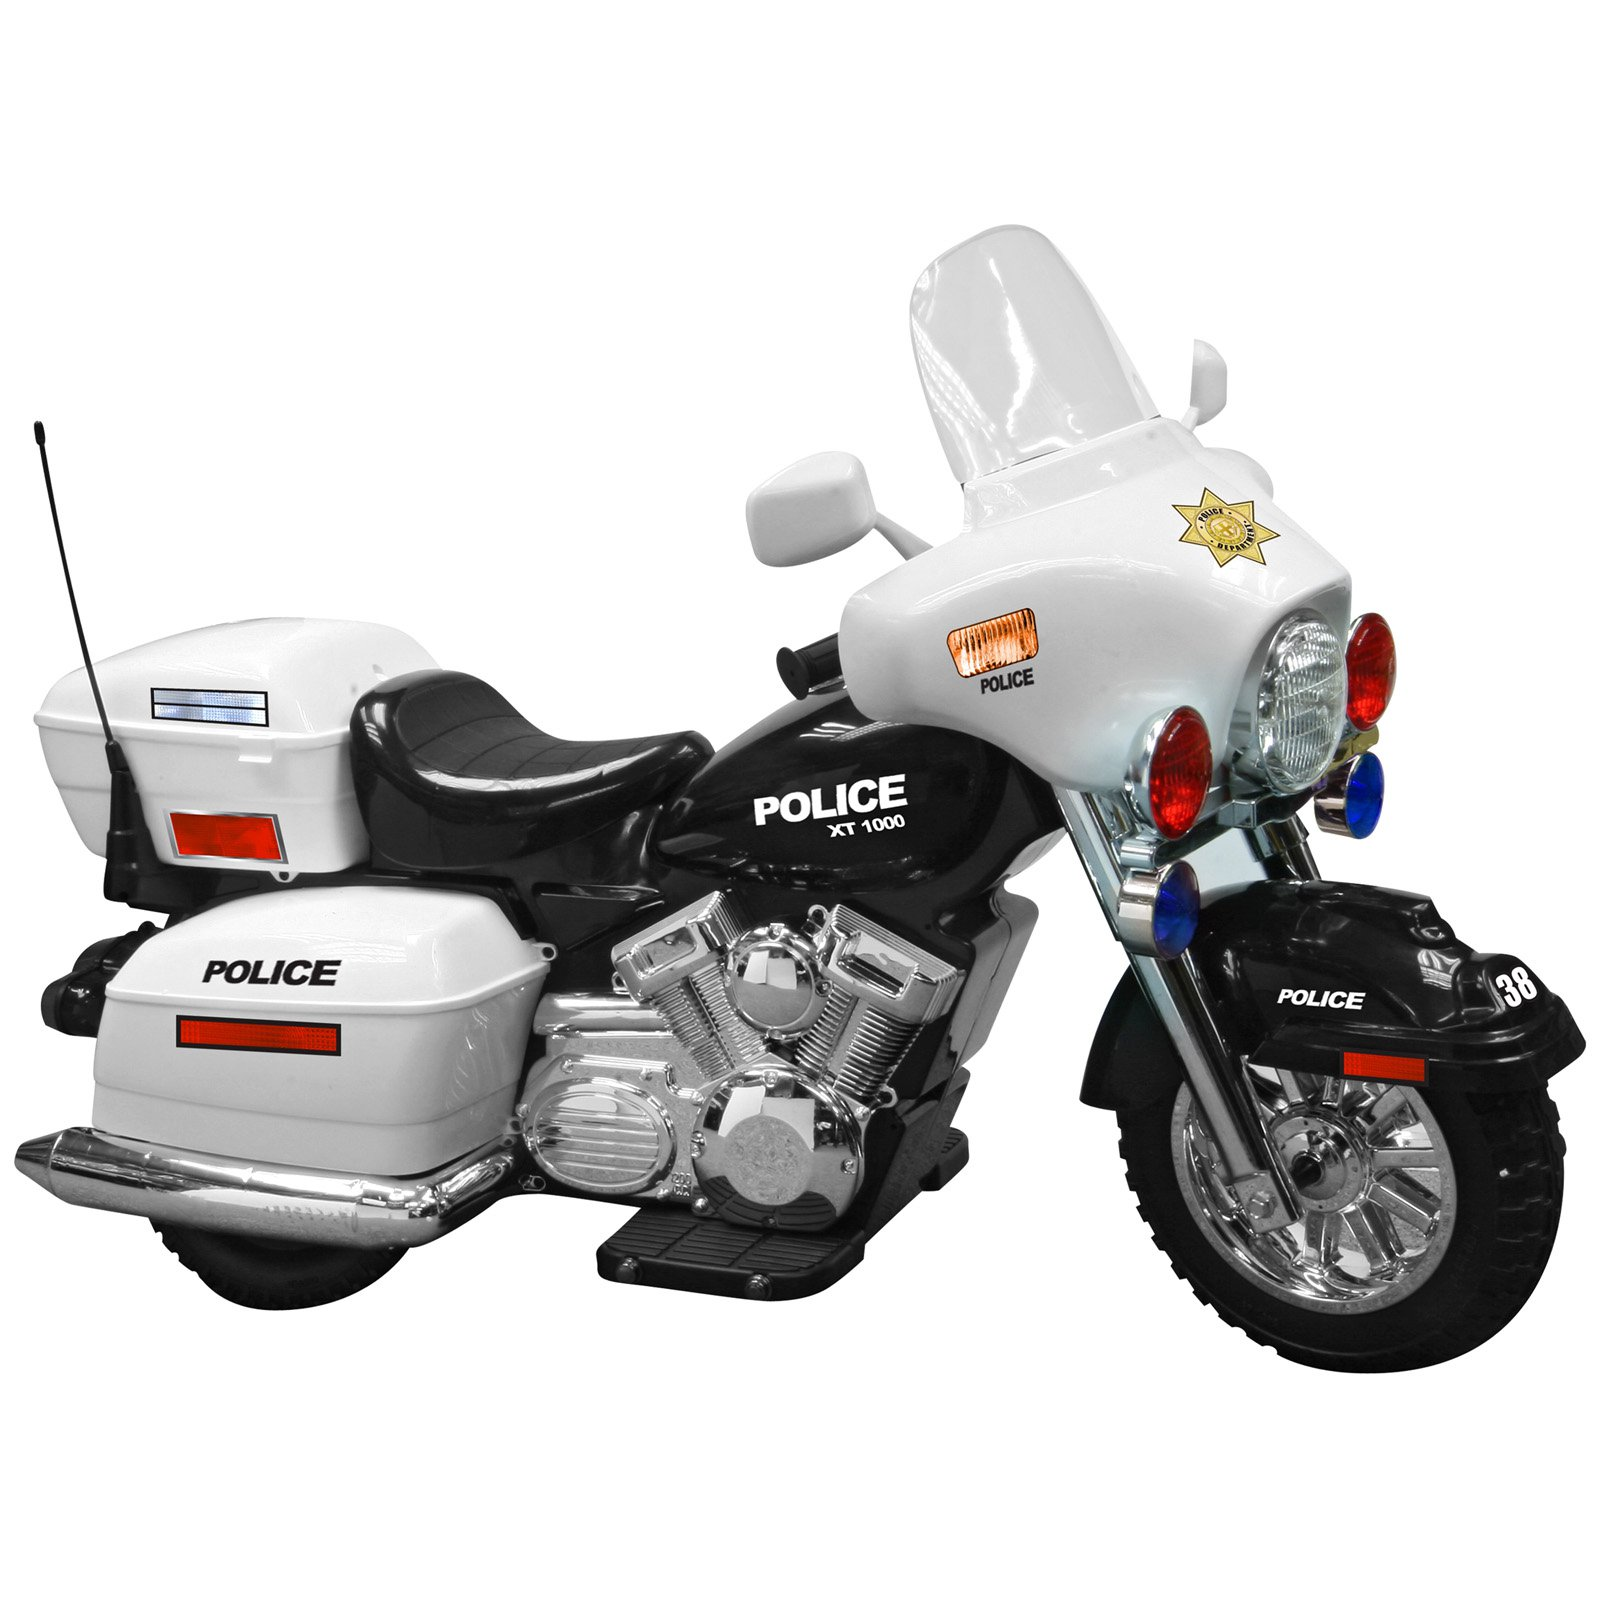 motorcycle police toy battery ride children kid powered toys riding fun operated walmart motorz electric motorcycles motorbike cars patrol wheel